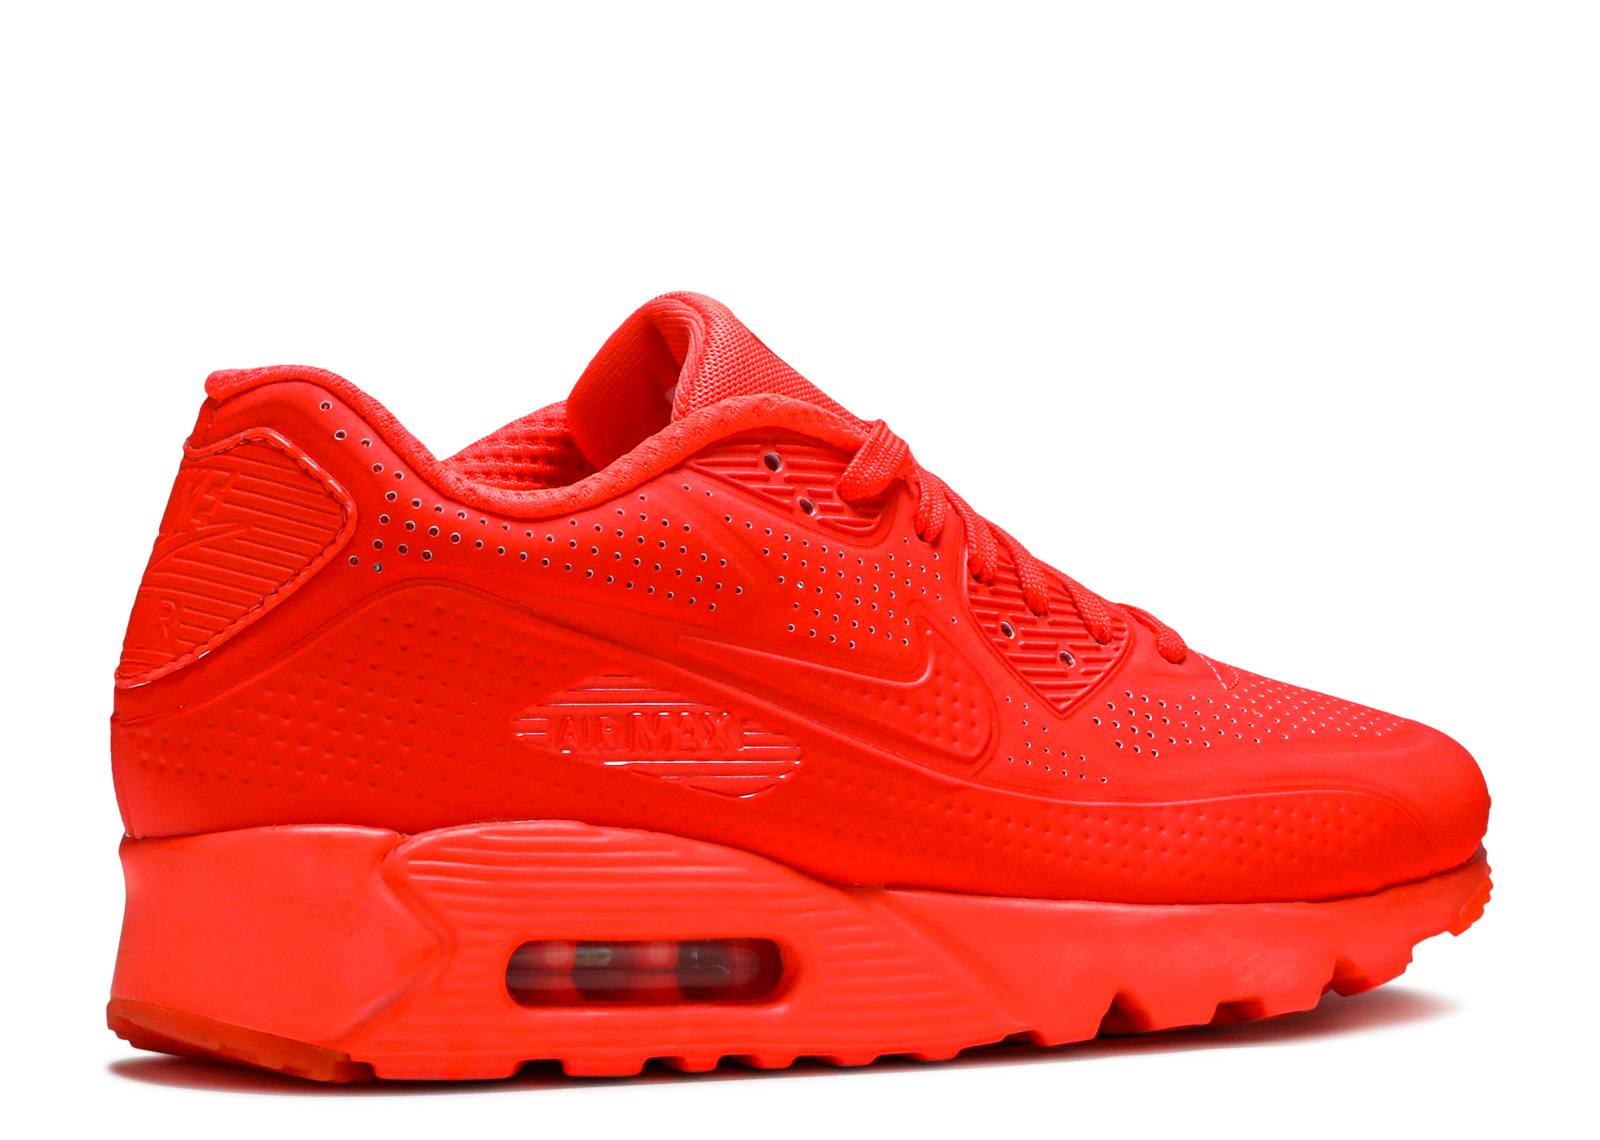 sneakers for cheap 4793c 185d4 ... australia air max 90 ultra moire nike 819477 600 bright crimson bright  crimson white flight club